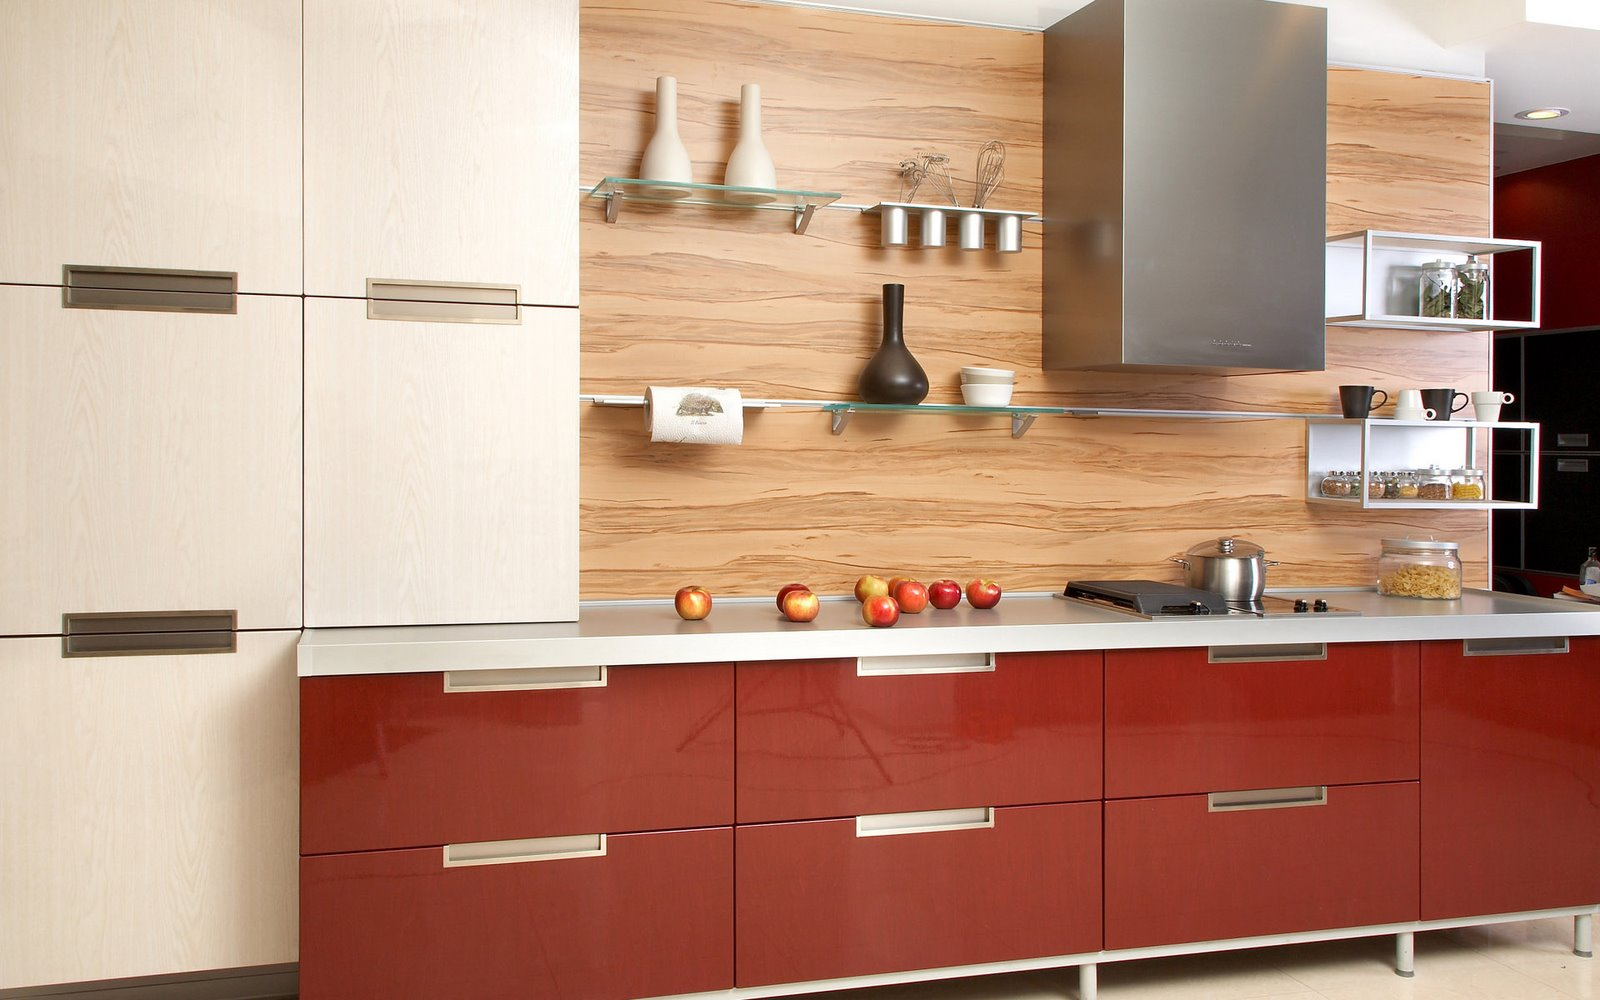 Modern wood kitchen design dream kitchens pinterest for Kitchen designs contemporary